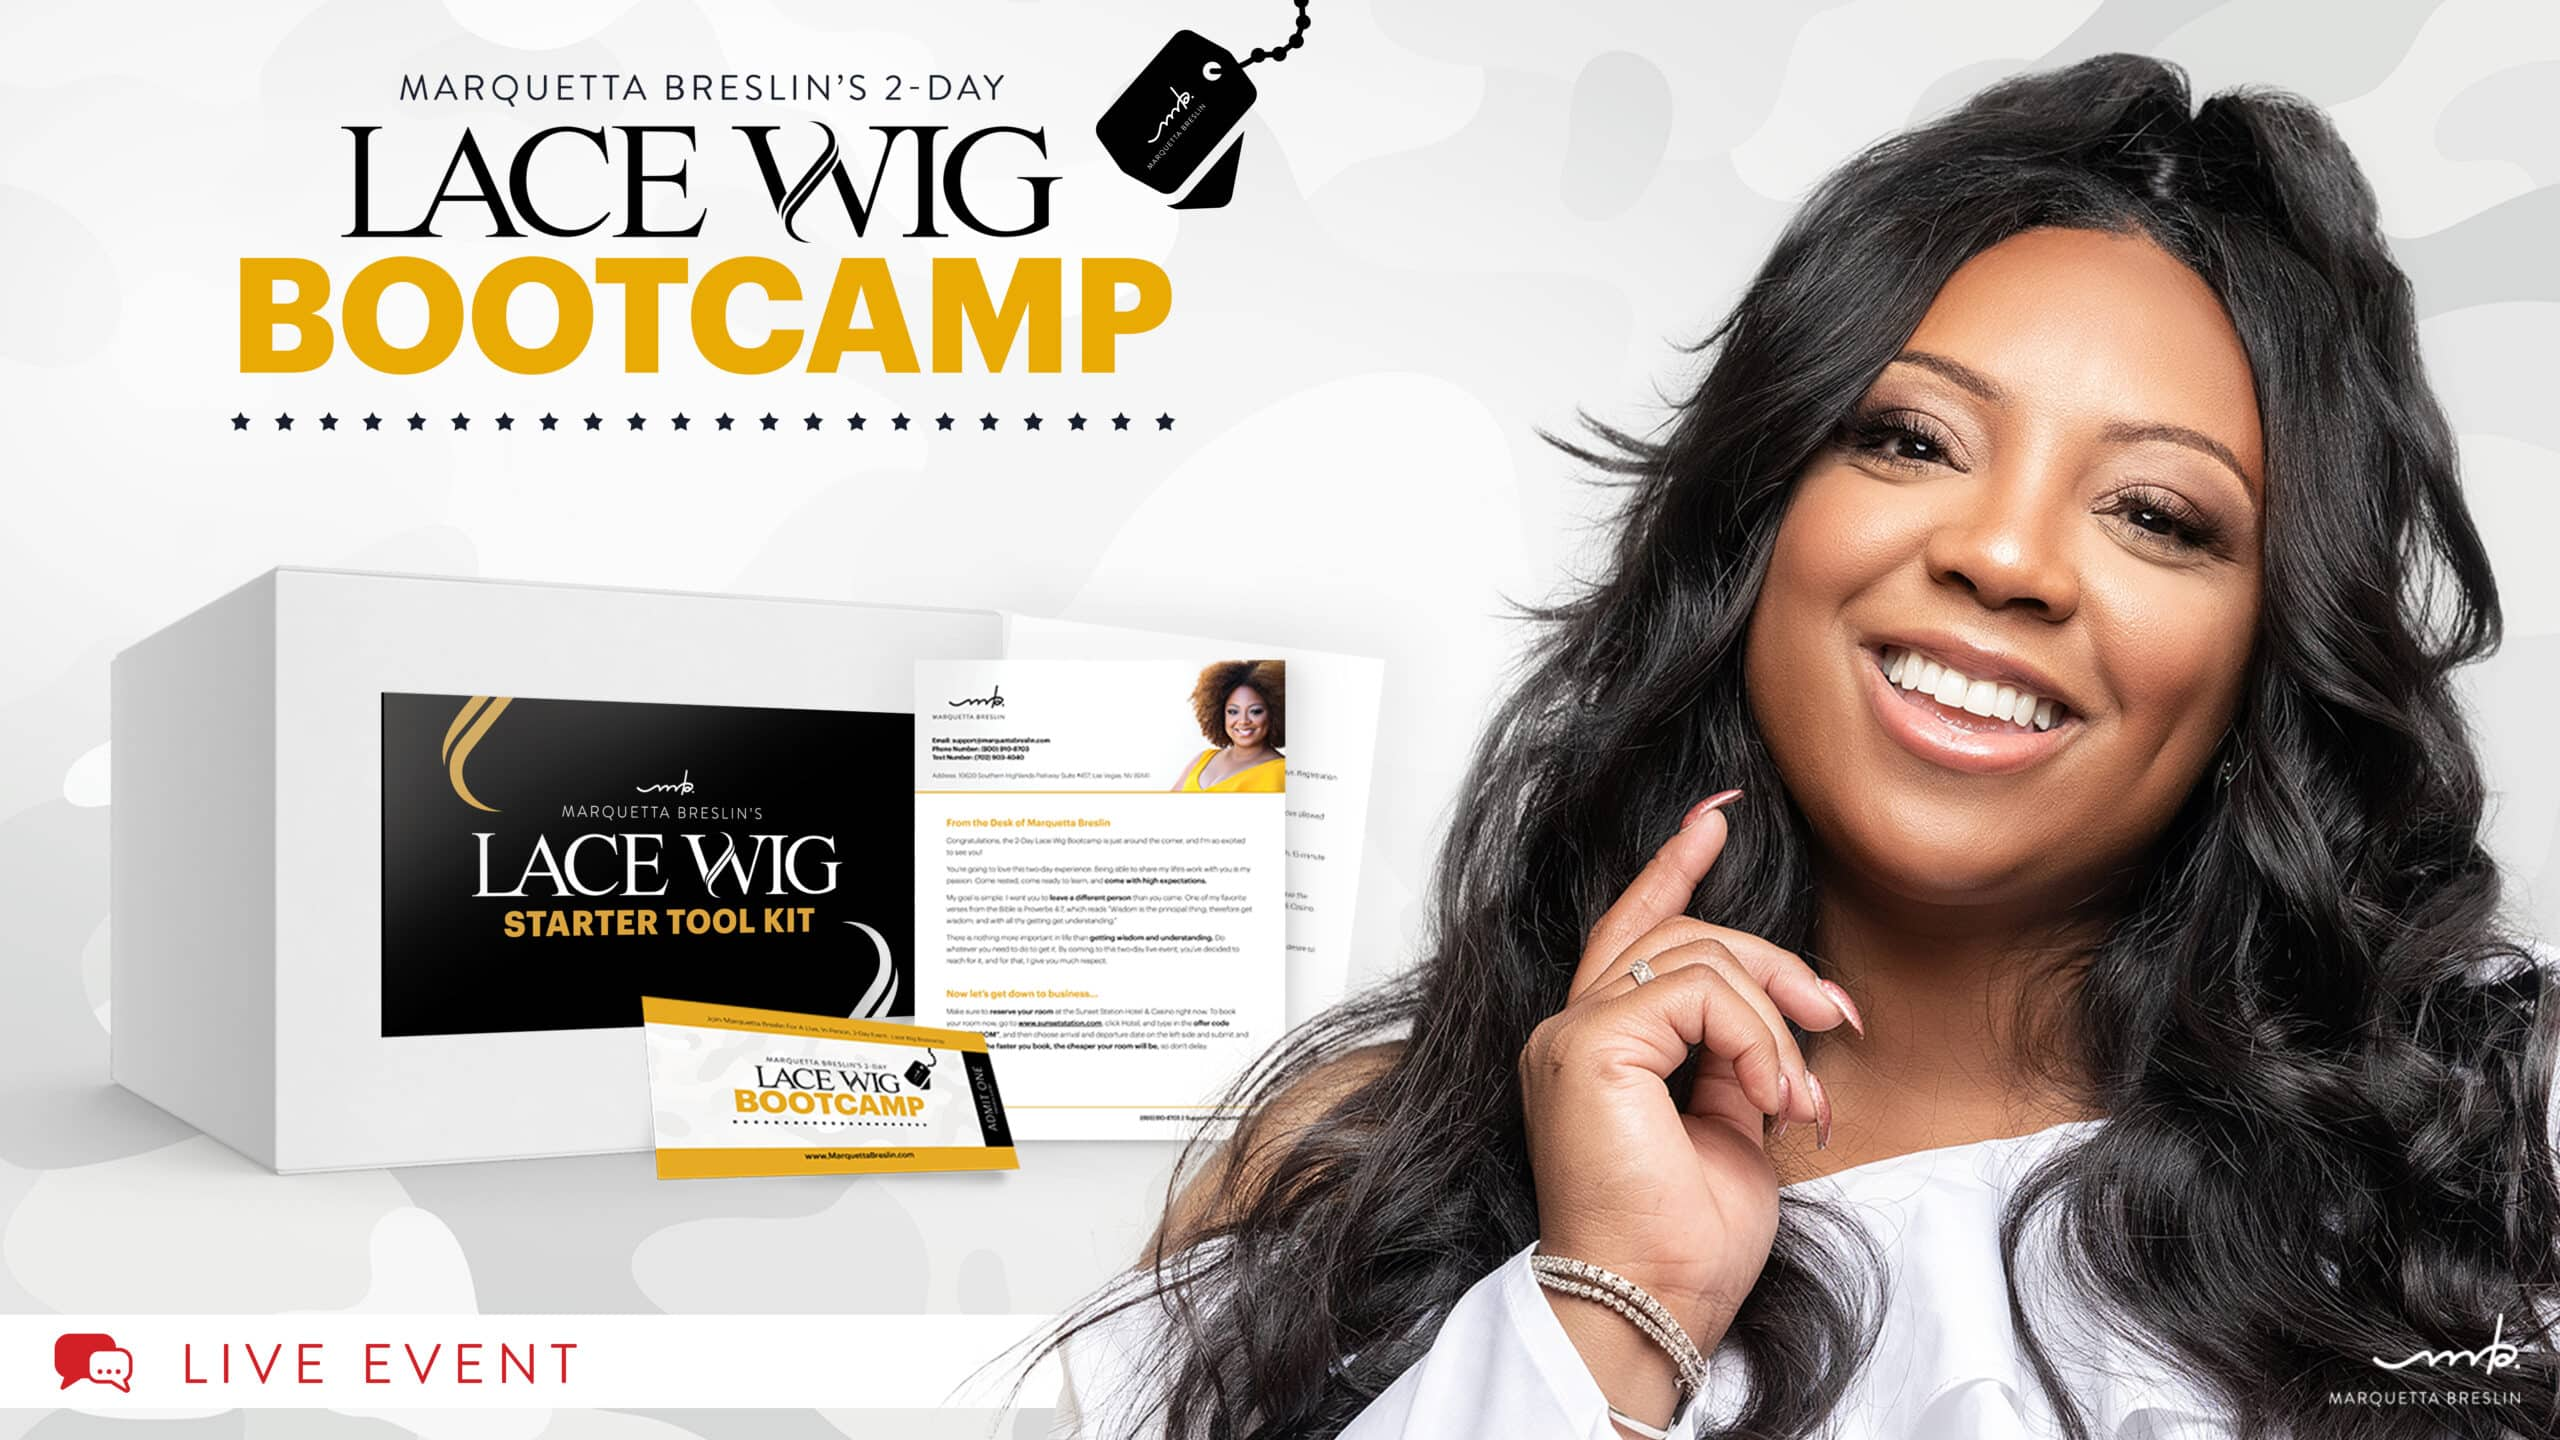 2-DAY LACE WIG BOOTCAMP THUMB@2x